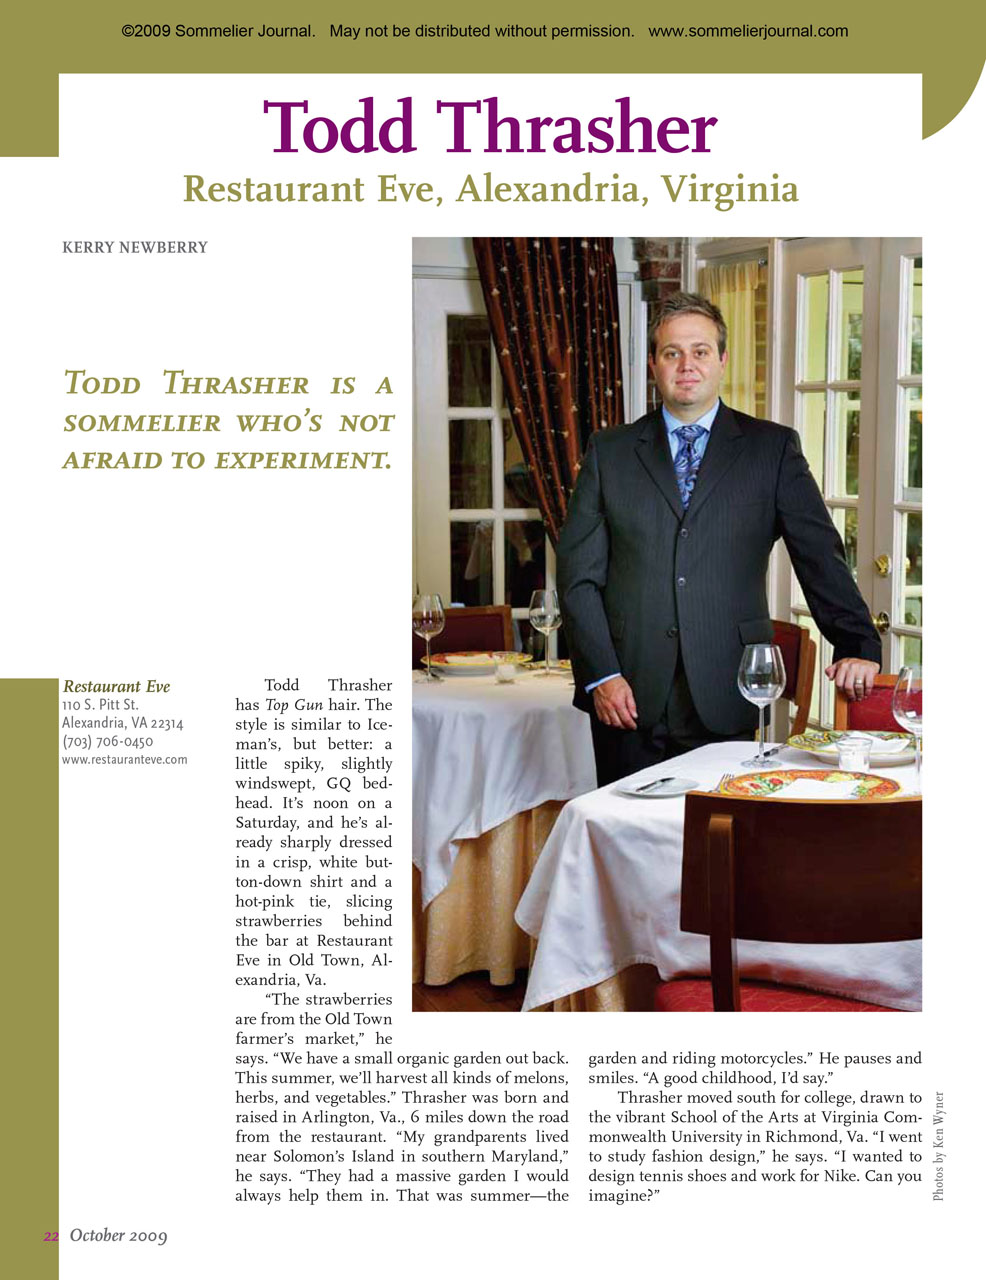 Sommelier Spotlight: Todd Thrasher, Restaurant Eve, Alexandria, Virginia